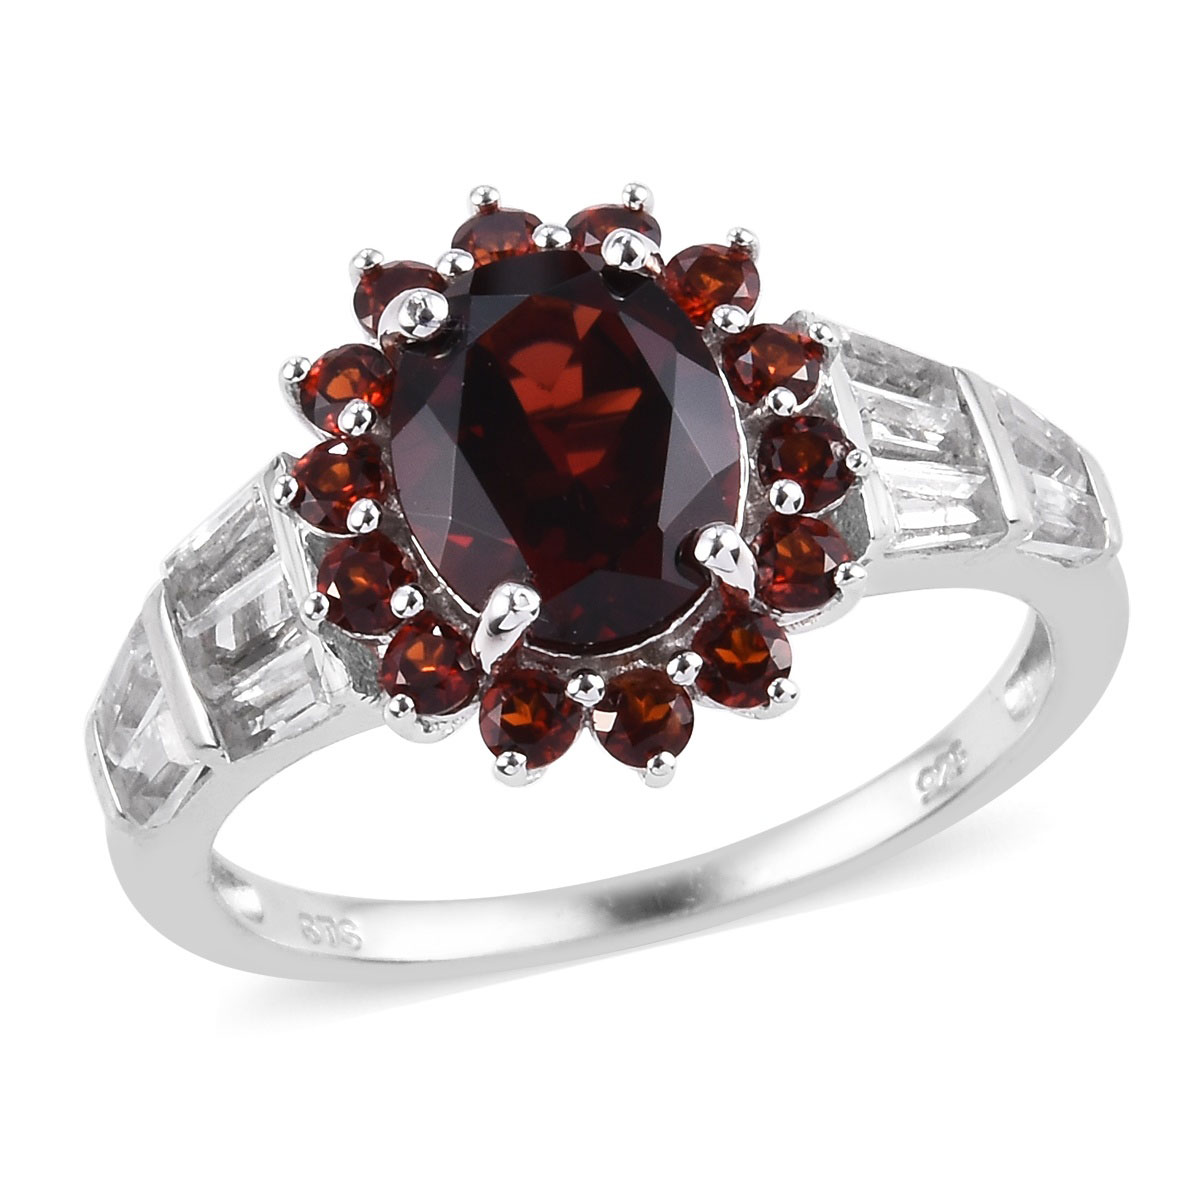 EPIC DEAL Mozambique Garnet, White Topaz Ring in Platinum Over Sterling  Silver (Size 7 0) 5 15 ctw